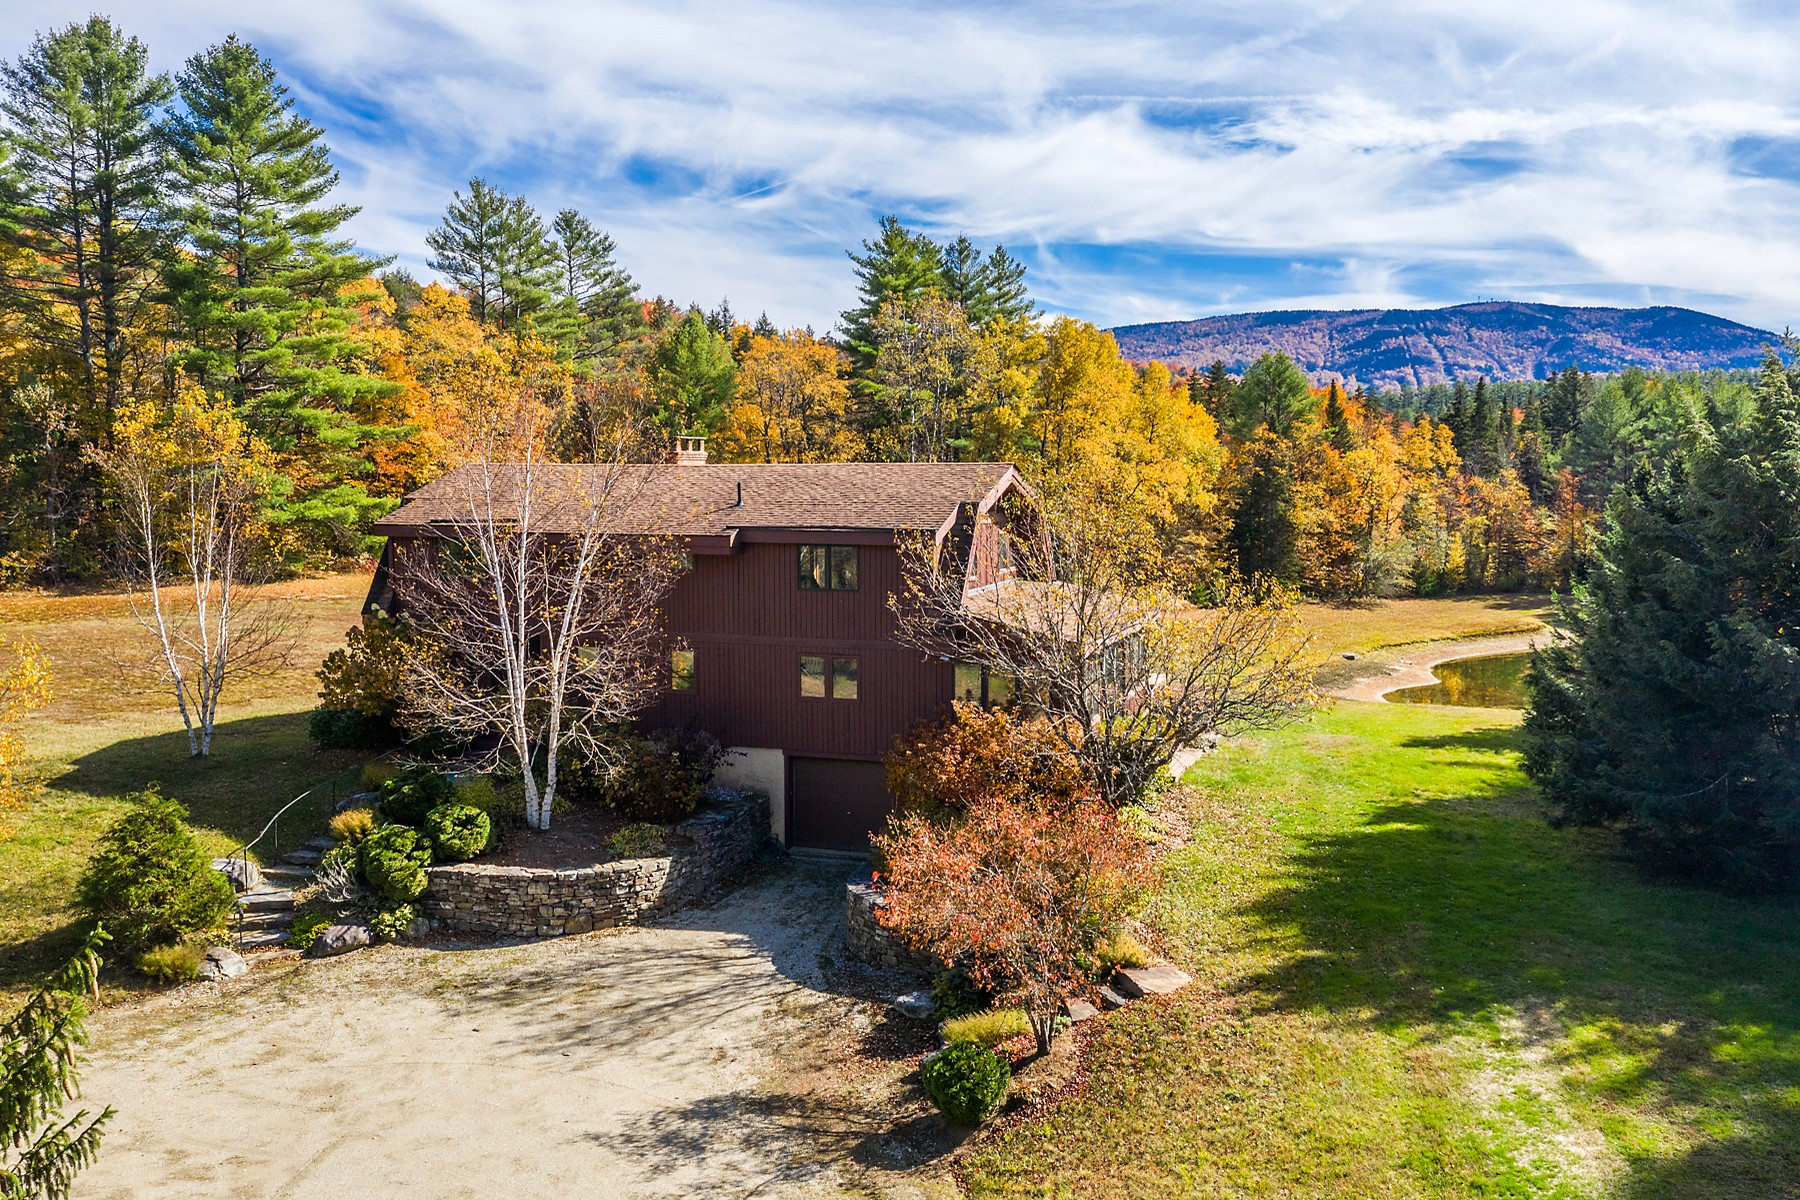 Single Family Homes for Sale at Custom Lindal Cedar Home Privately Set on 9+ Acres 332 Derry Woods Road Londonderry, Vermont 05148 United States